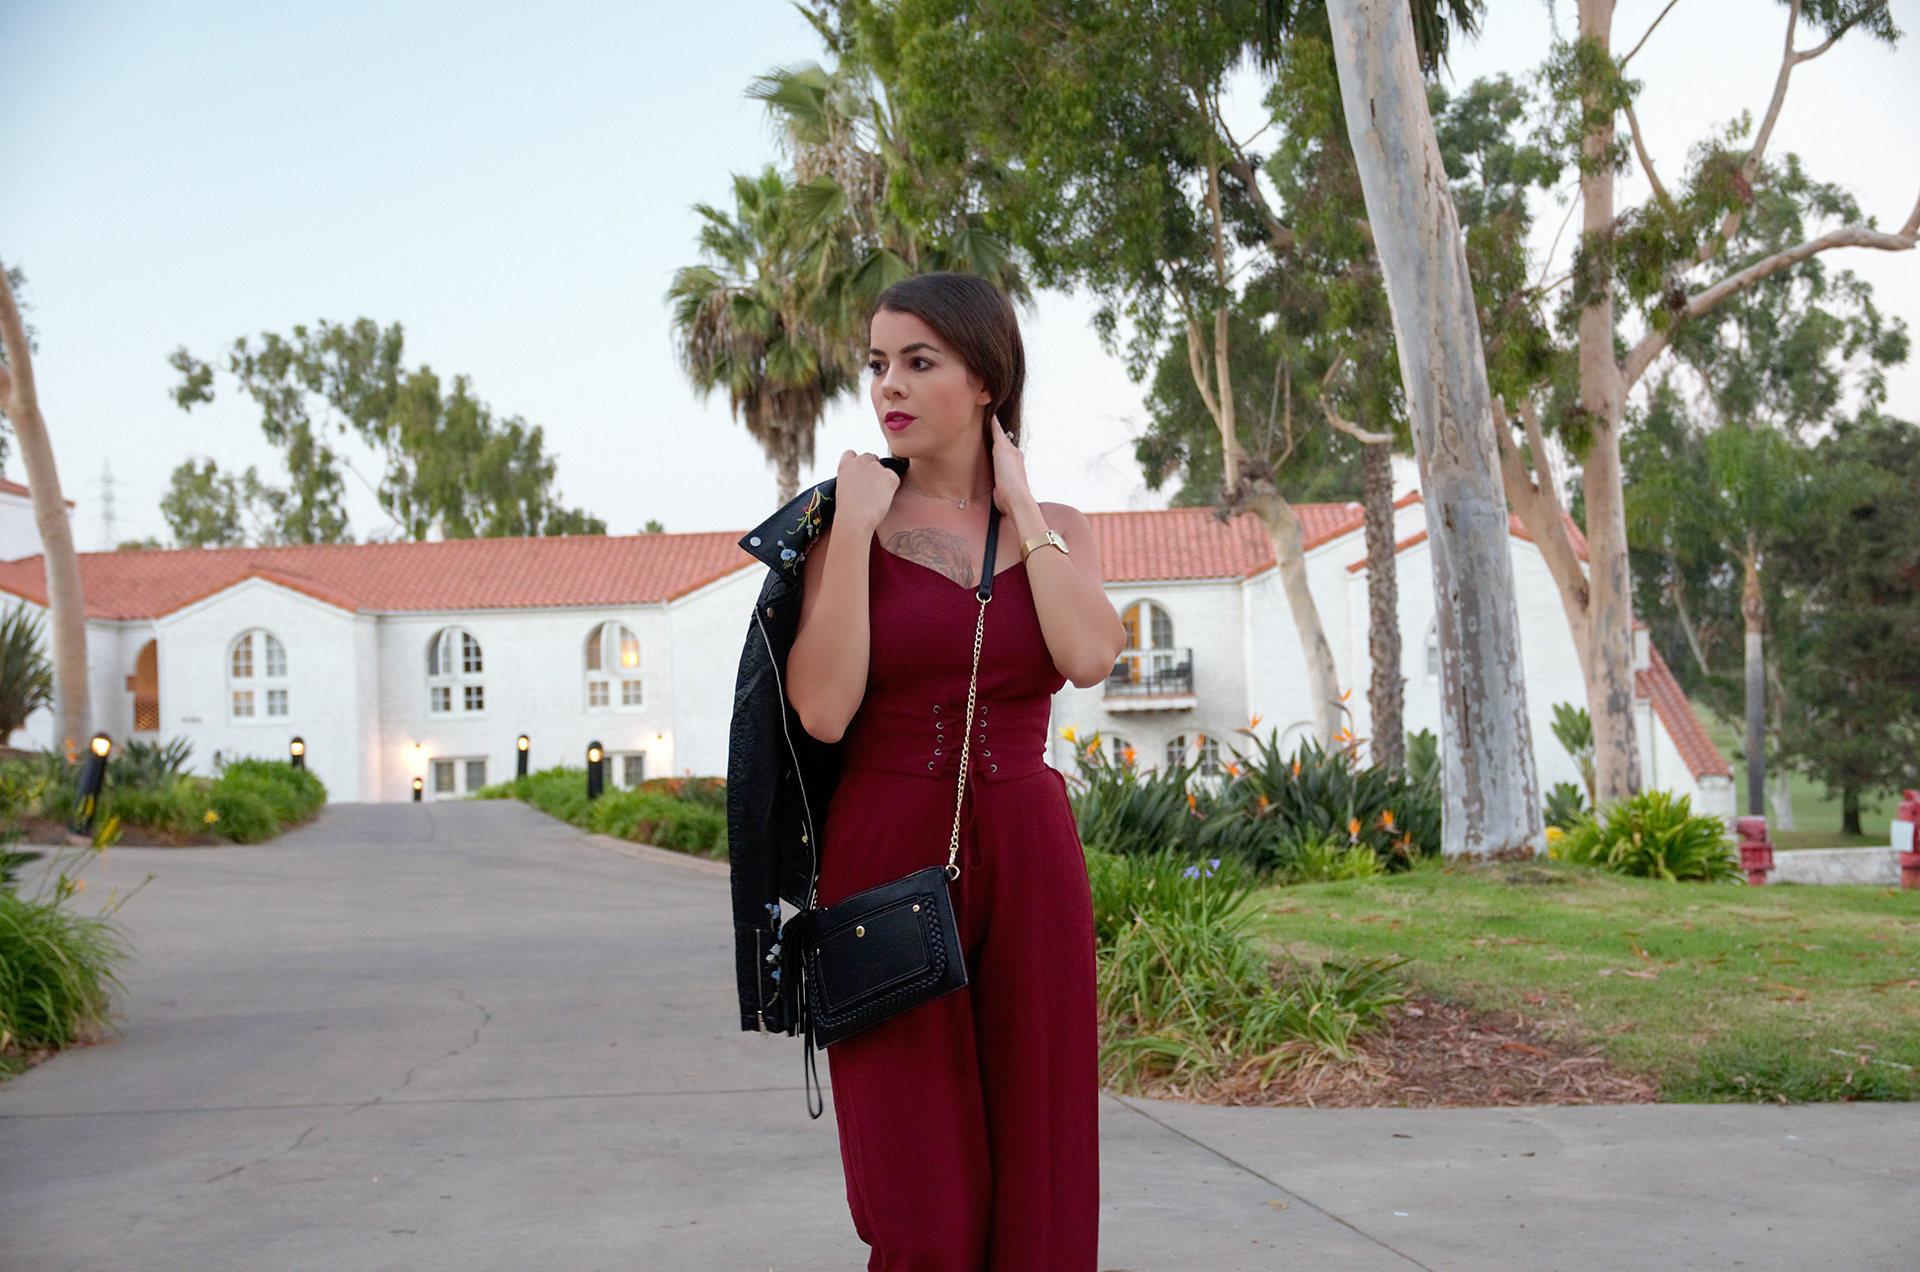 ceebbc565ad Burgundy Jumpsuit from Nordstrom (Wayf) and How Blogging Has Changed My  Life!